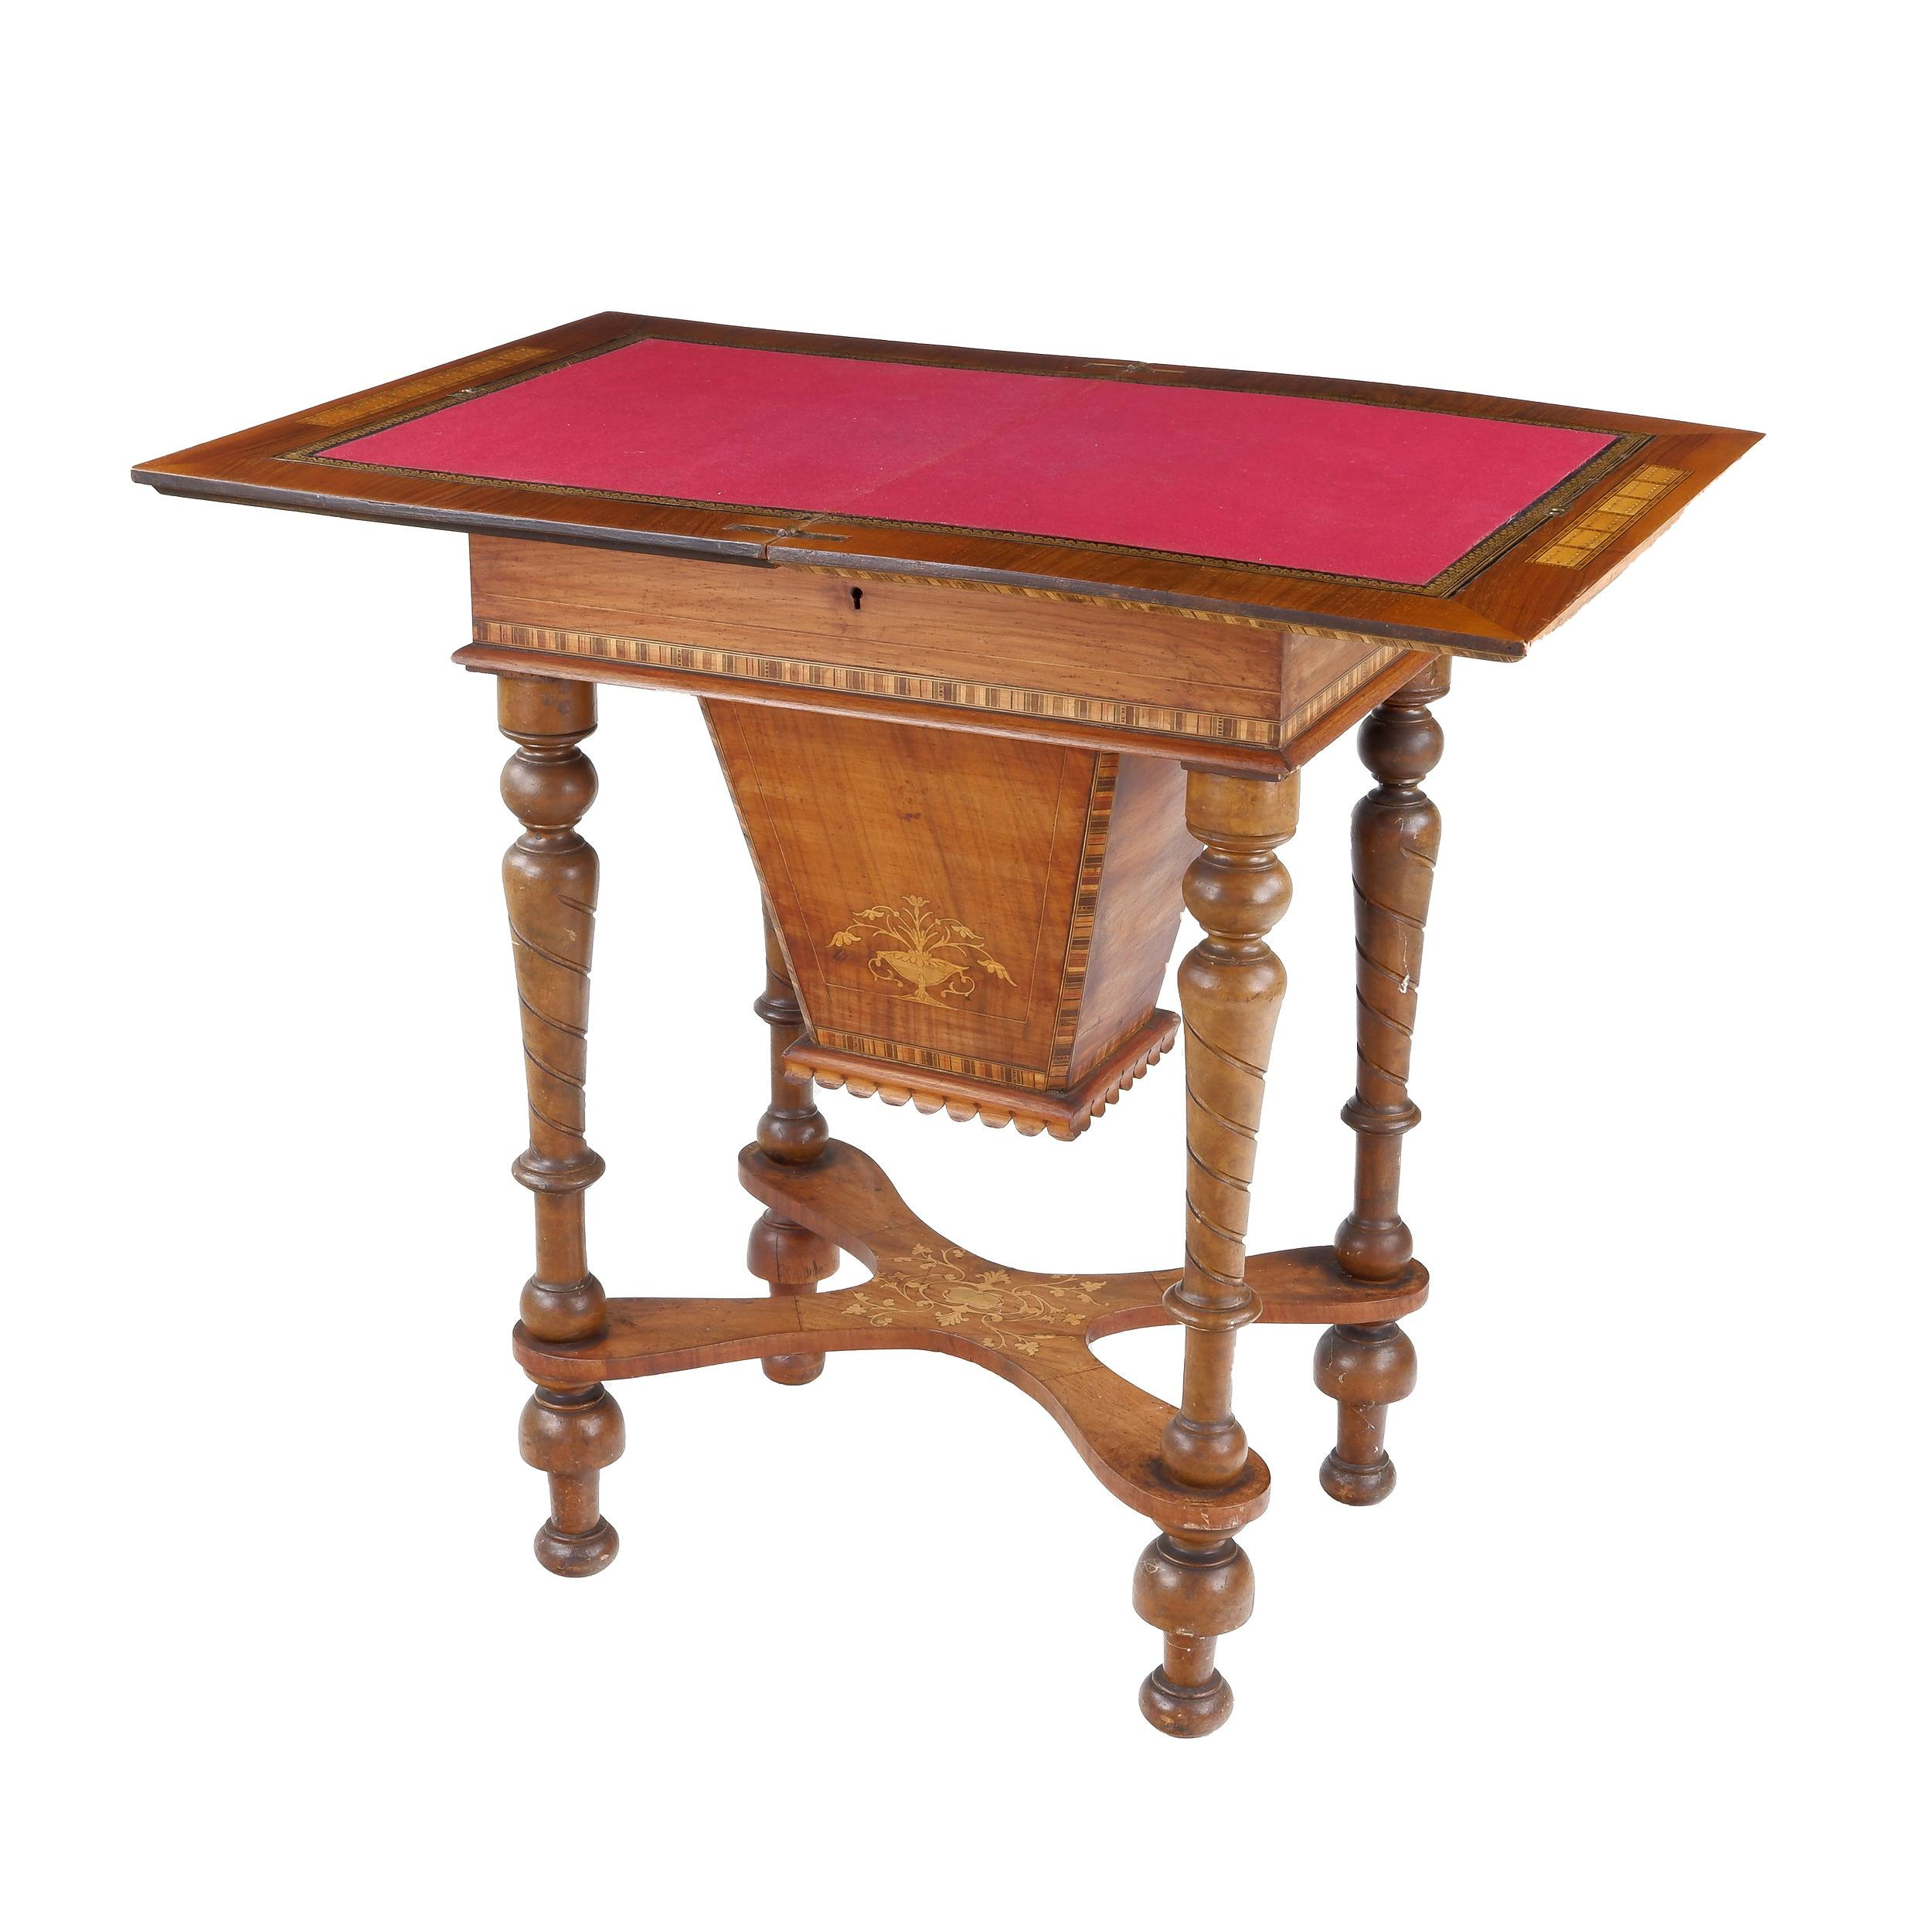 'Good Late Victorian Inlaid Walnut Combination Sewing Games Table Circa 1880'